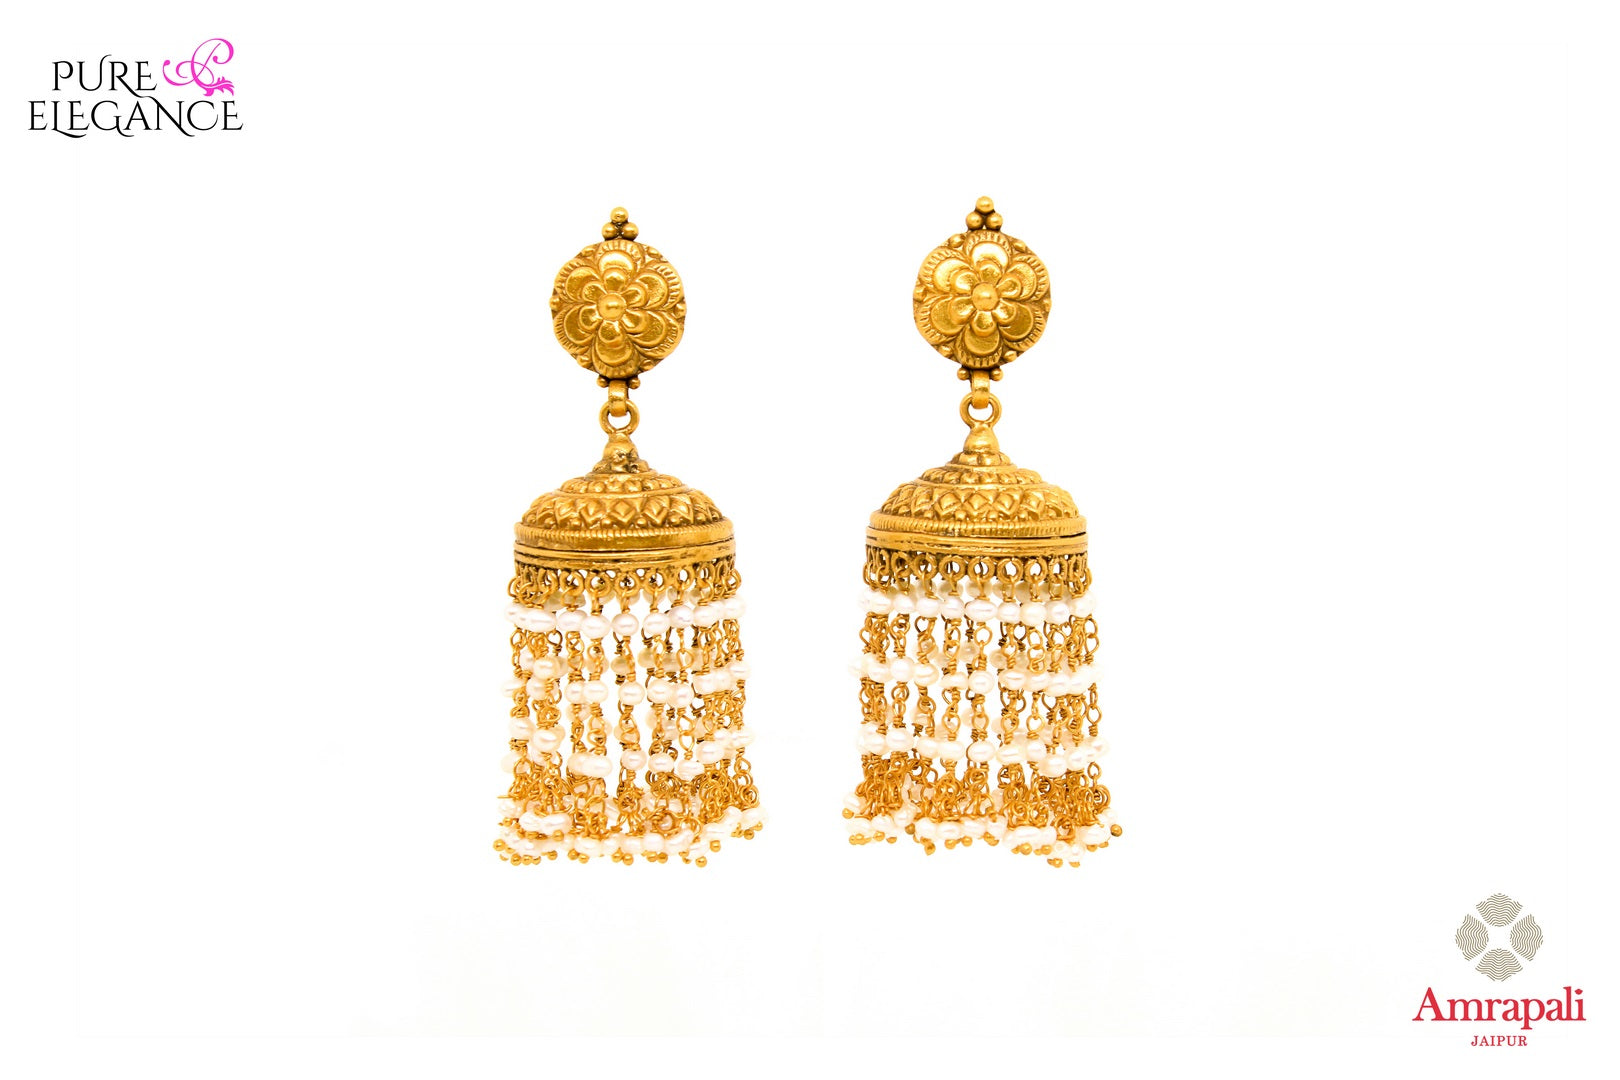 Buy ethnic Amrapali silver gold plated earrings online in USA with pearl tassels. Add a unique touch to your Indian look at special occasions with these gorgeous earrings. Shop more such exquisite Indian jewelry in USA at Pure Elegance, you can visit our exclusive fashion store in USA or shop online.-front look